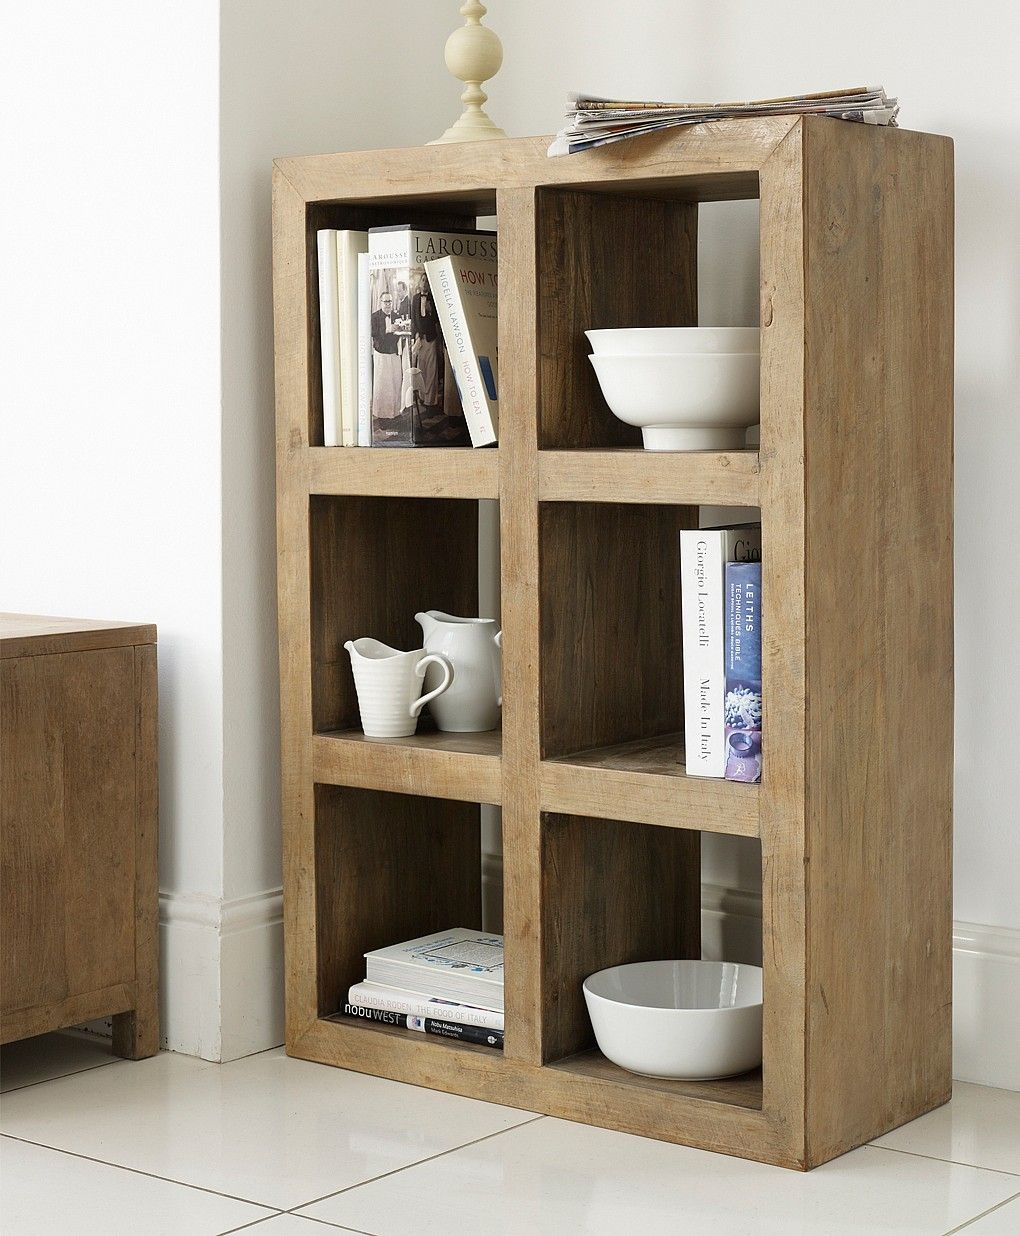 Wooden cube bookcase